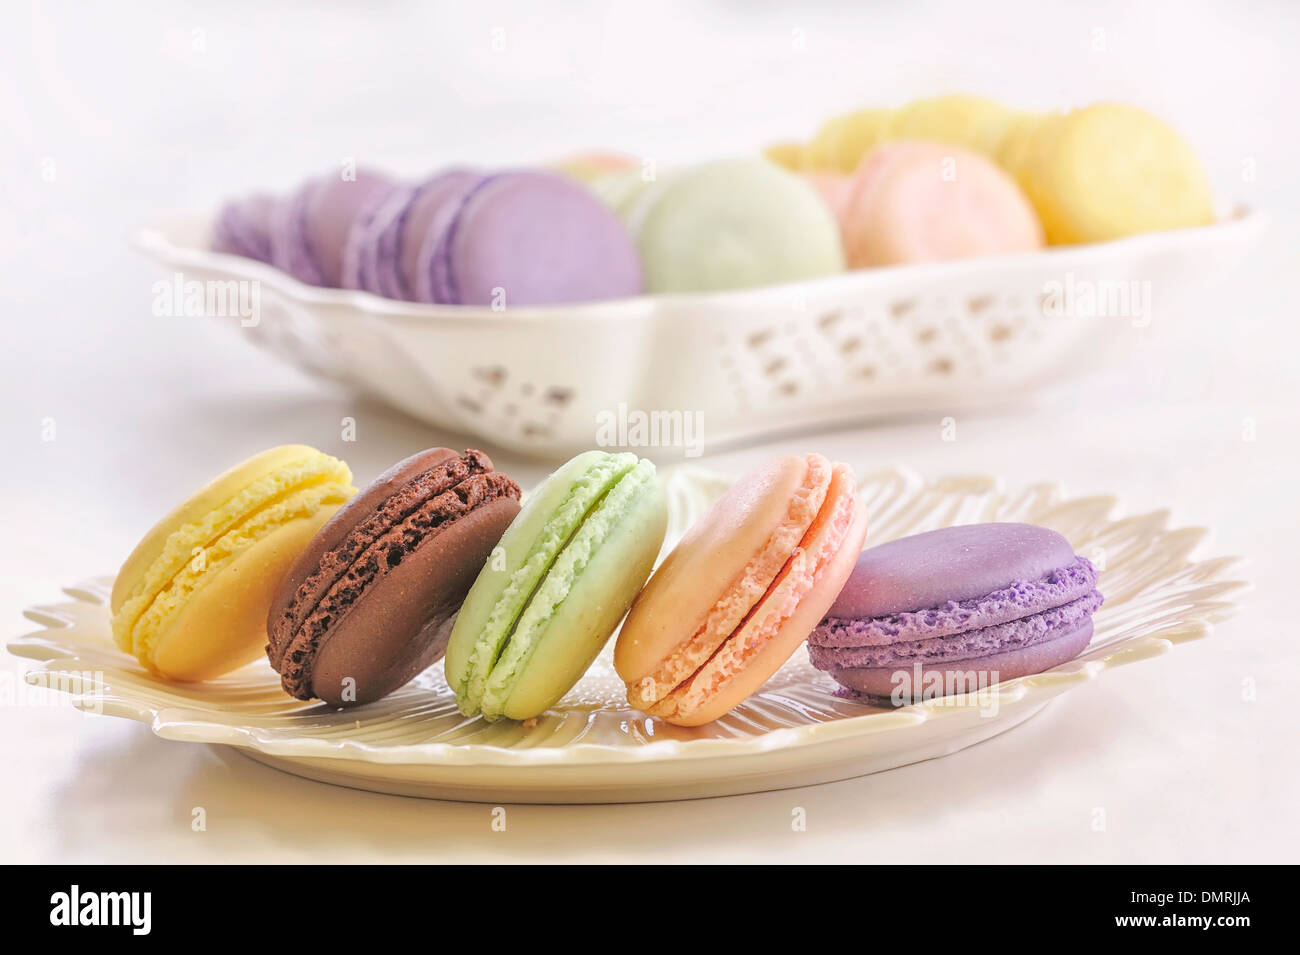 An assortment of cassis, citron, raspberry, chocolate and pistachio flavored macarons - Stock Image